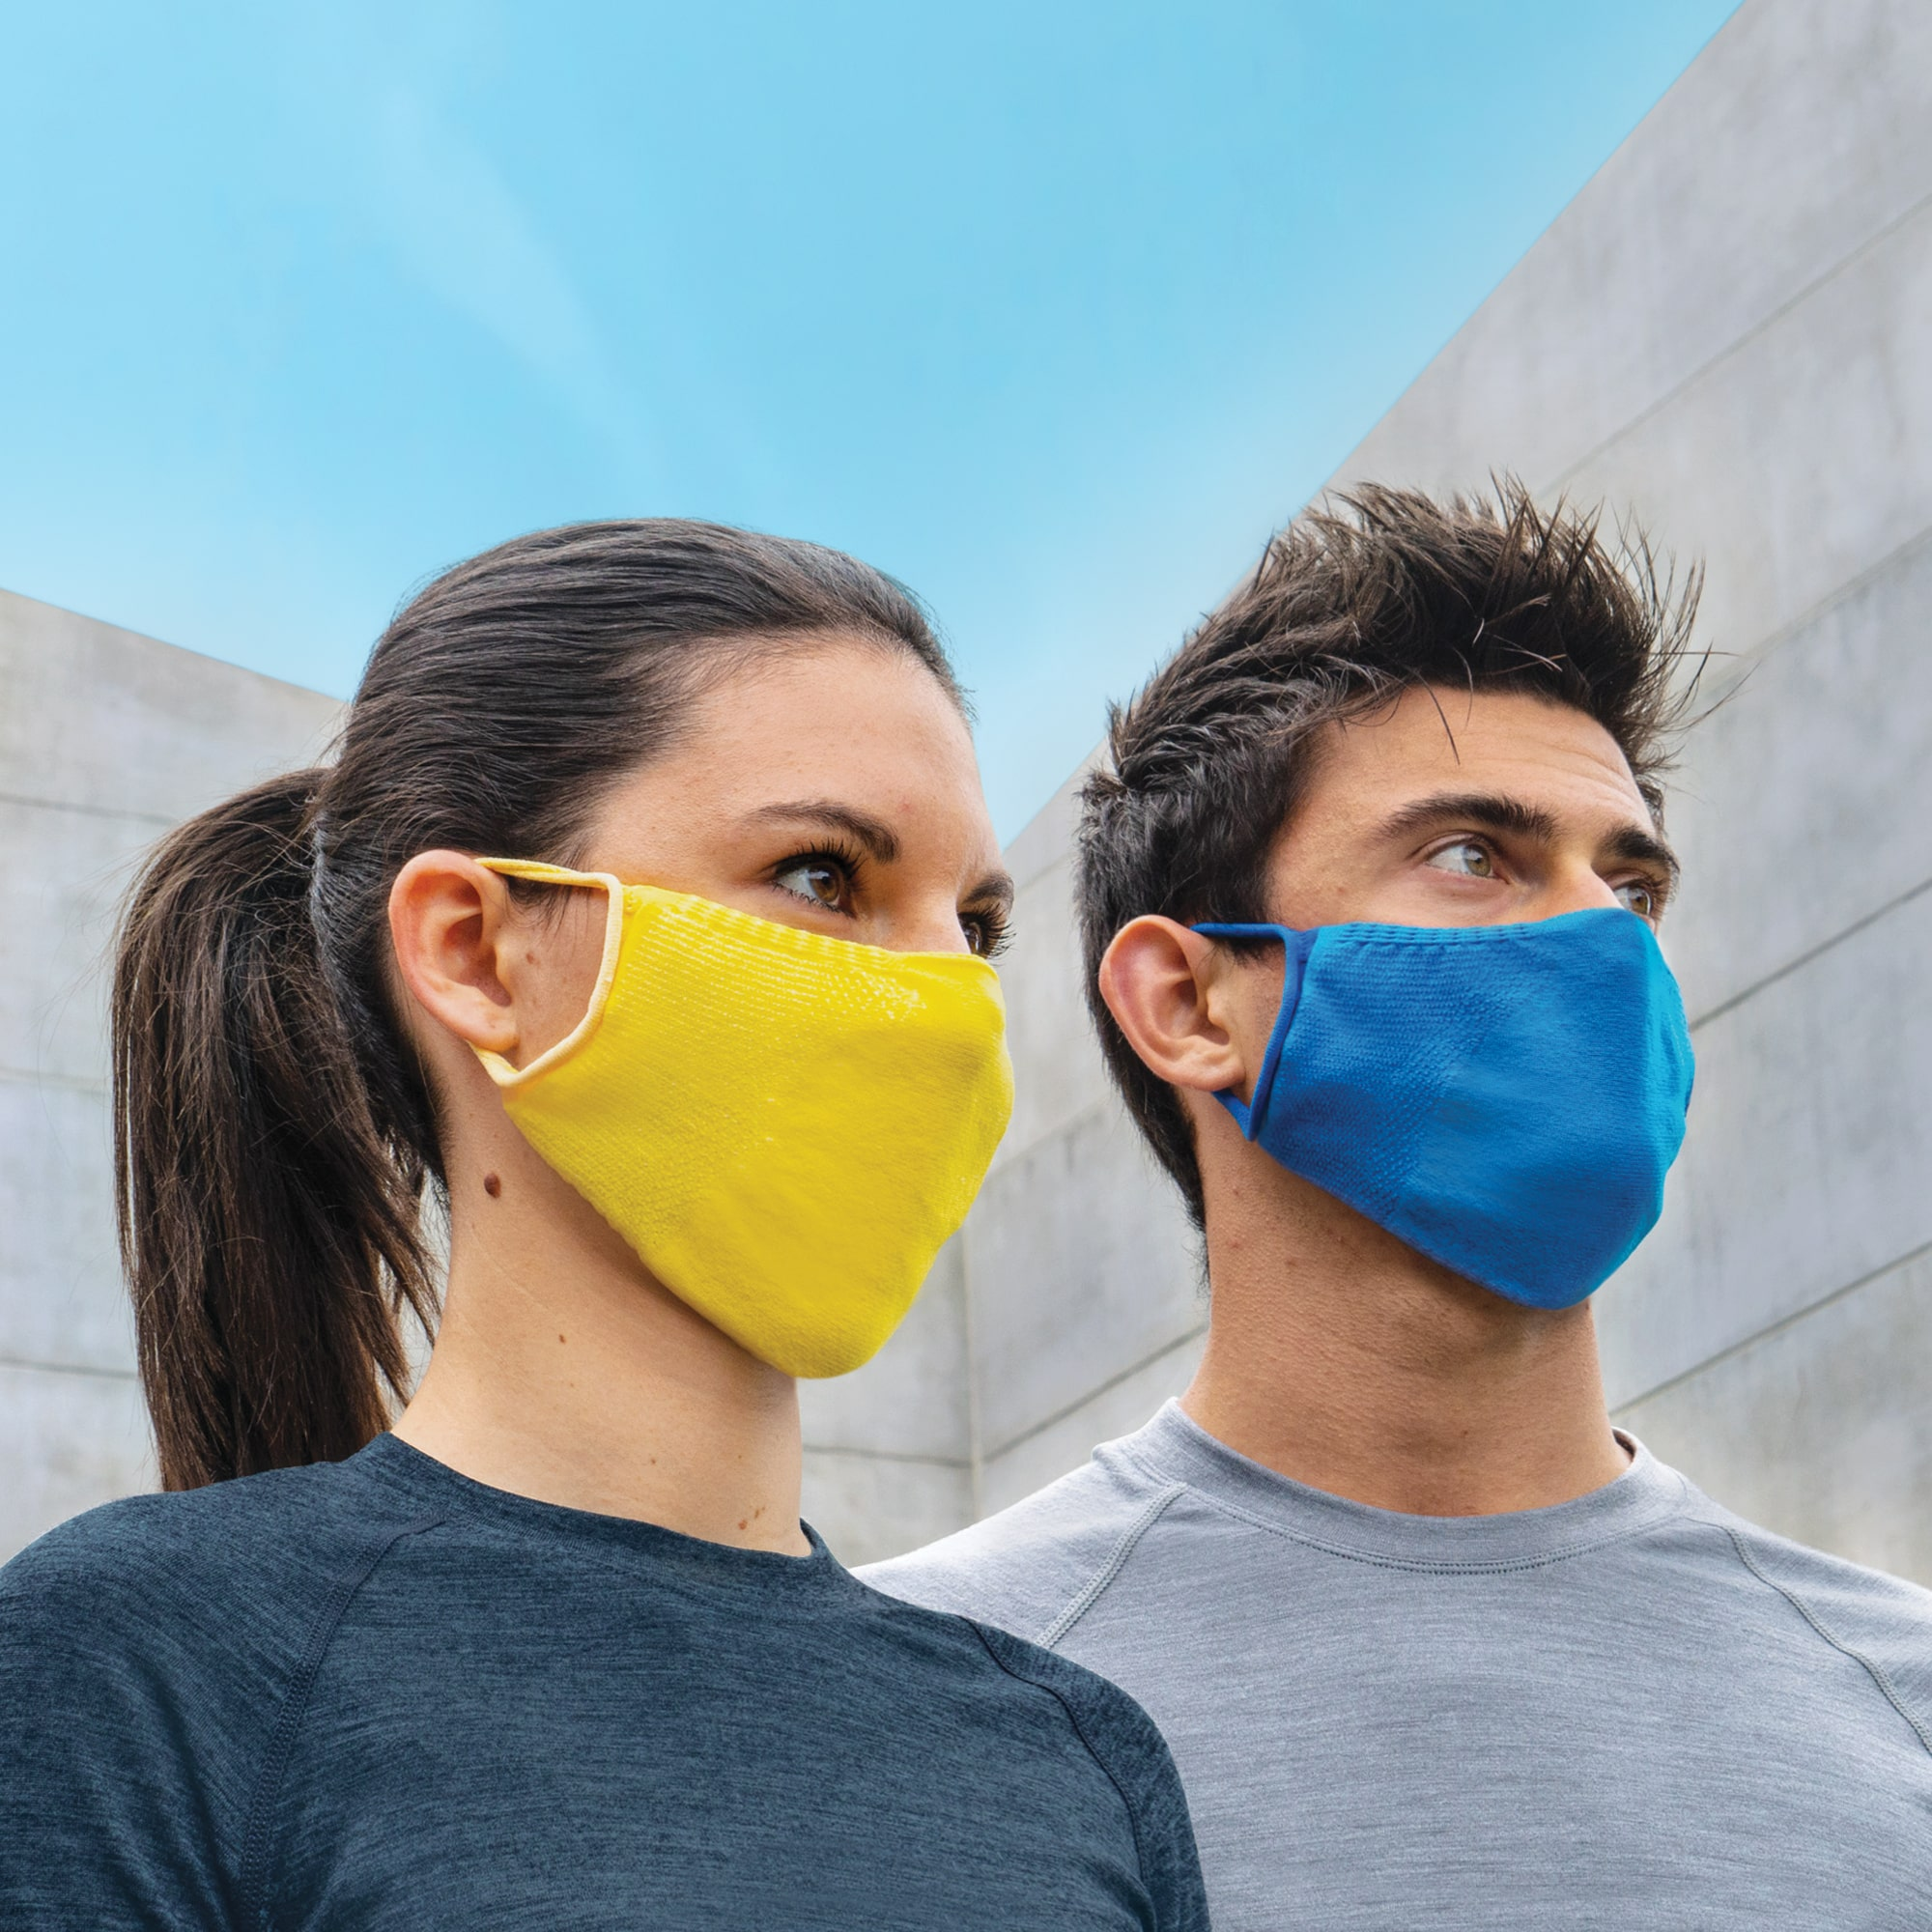 Is Running with a Mask Safe?